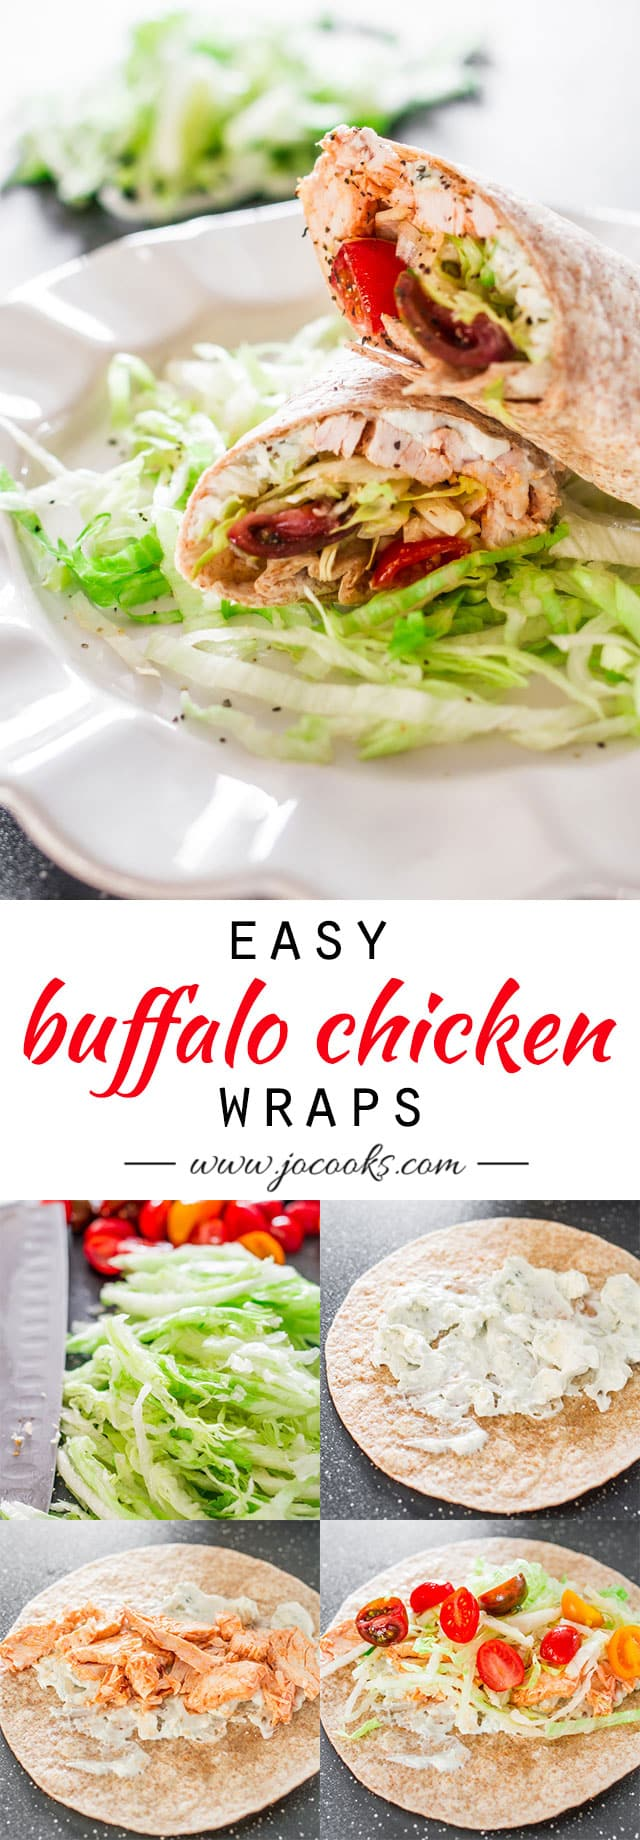 easy-buffalo-chicken-wraps-collage3